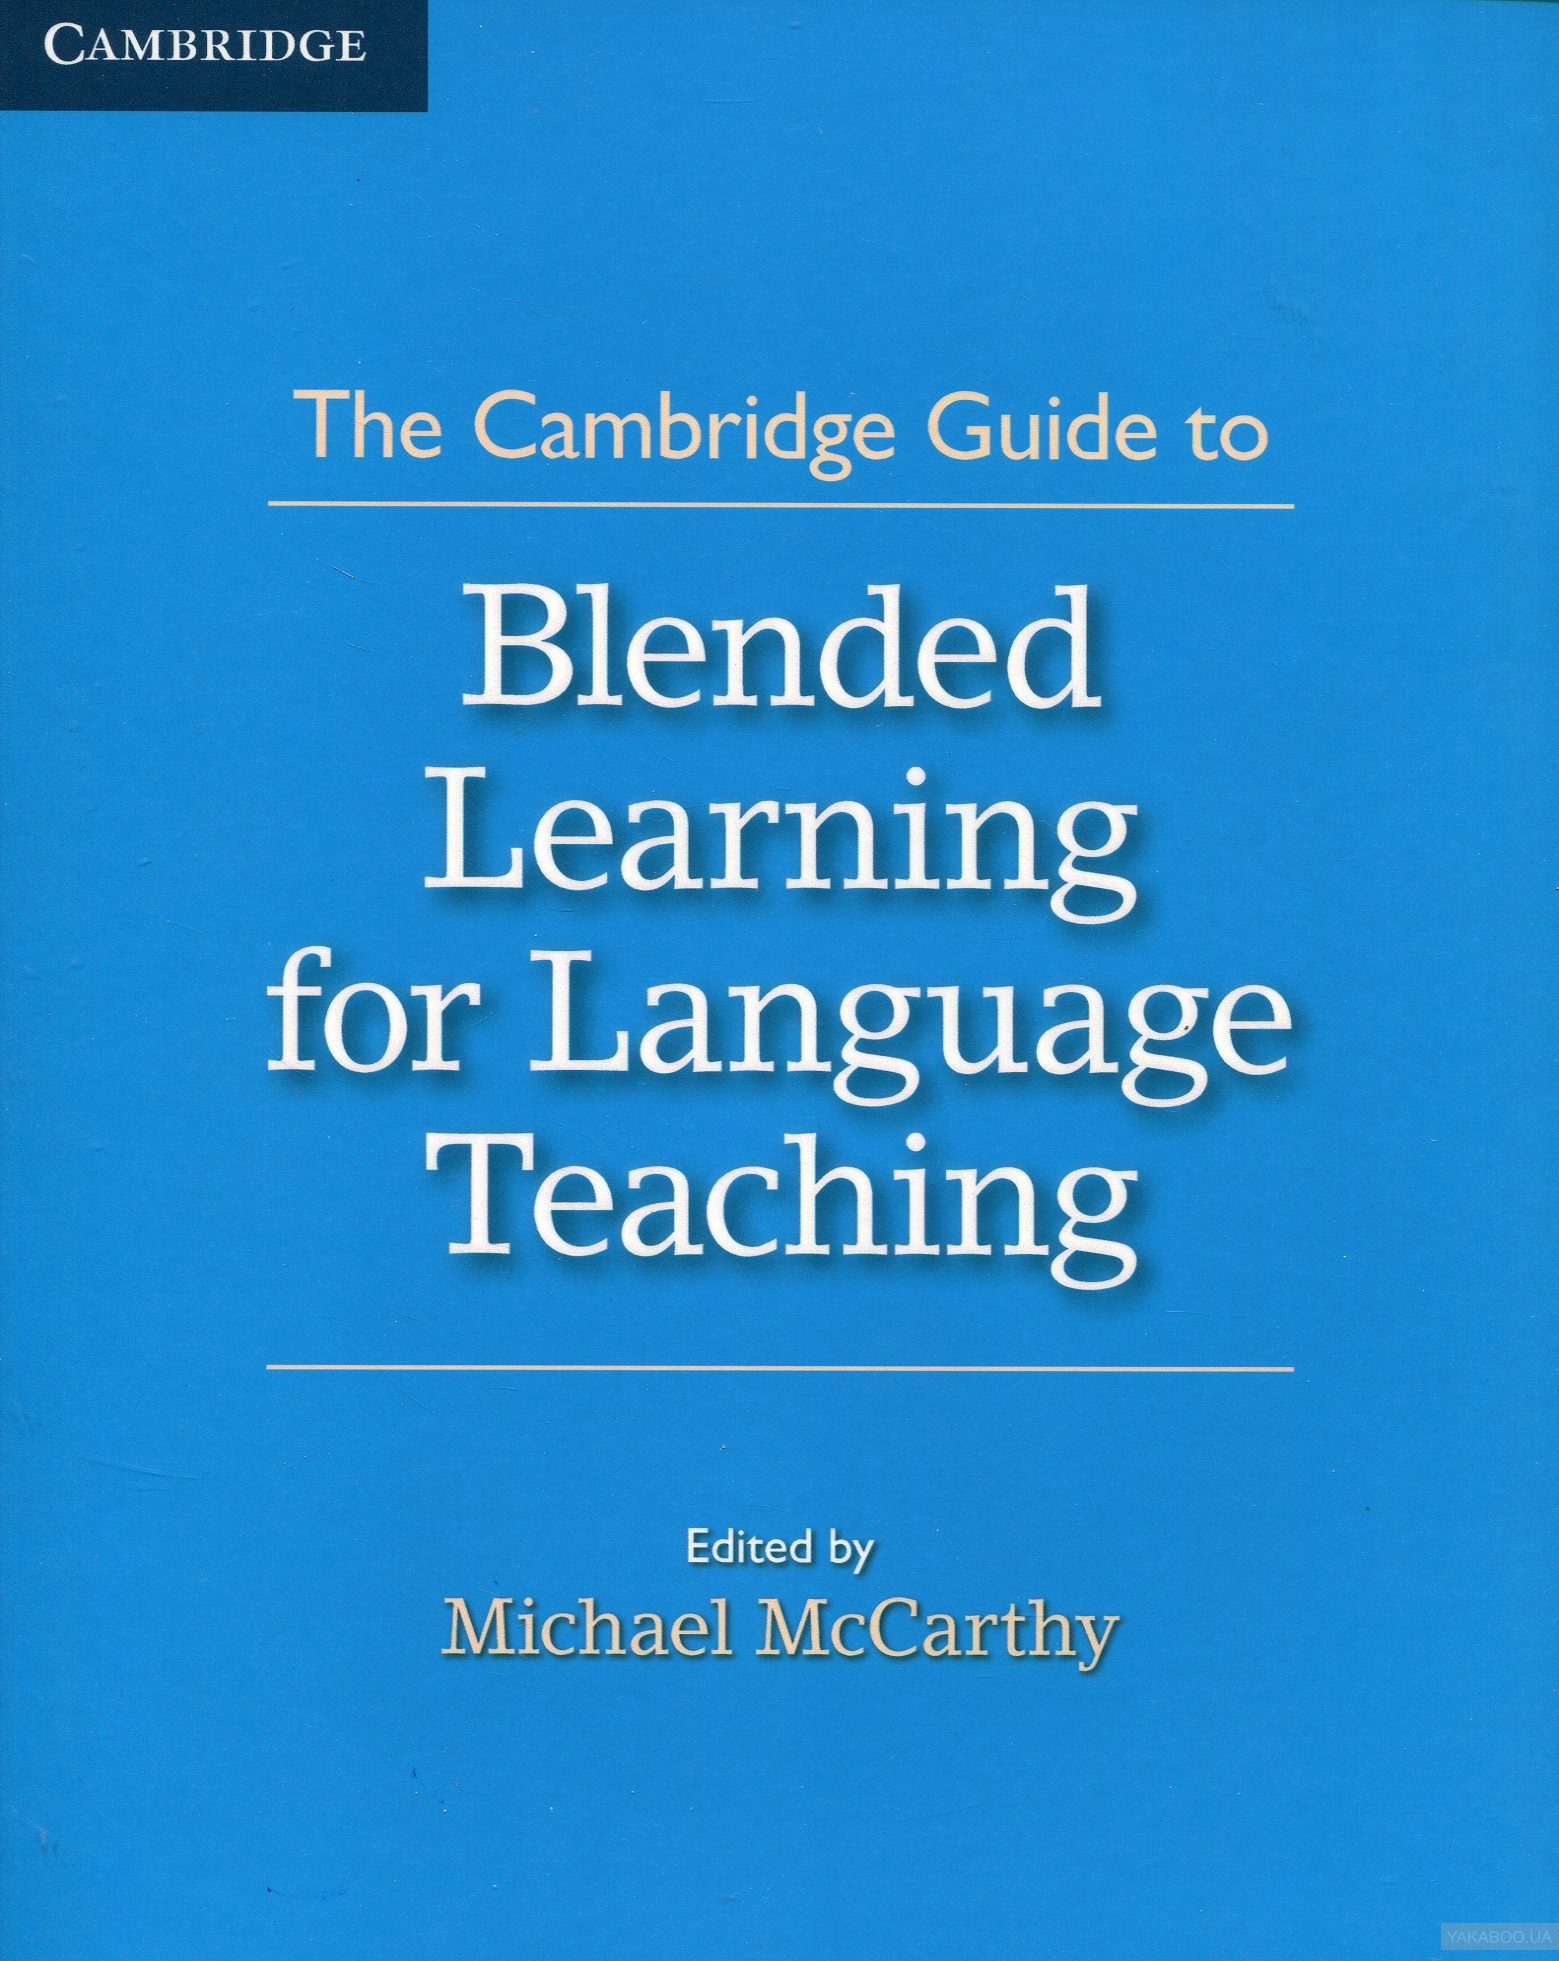 The cambridge guide to blended learning